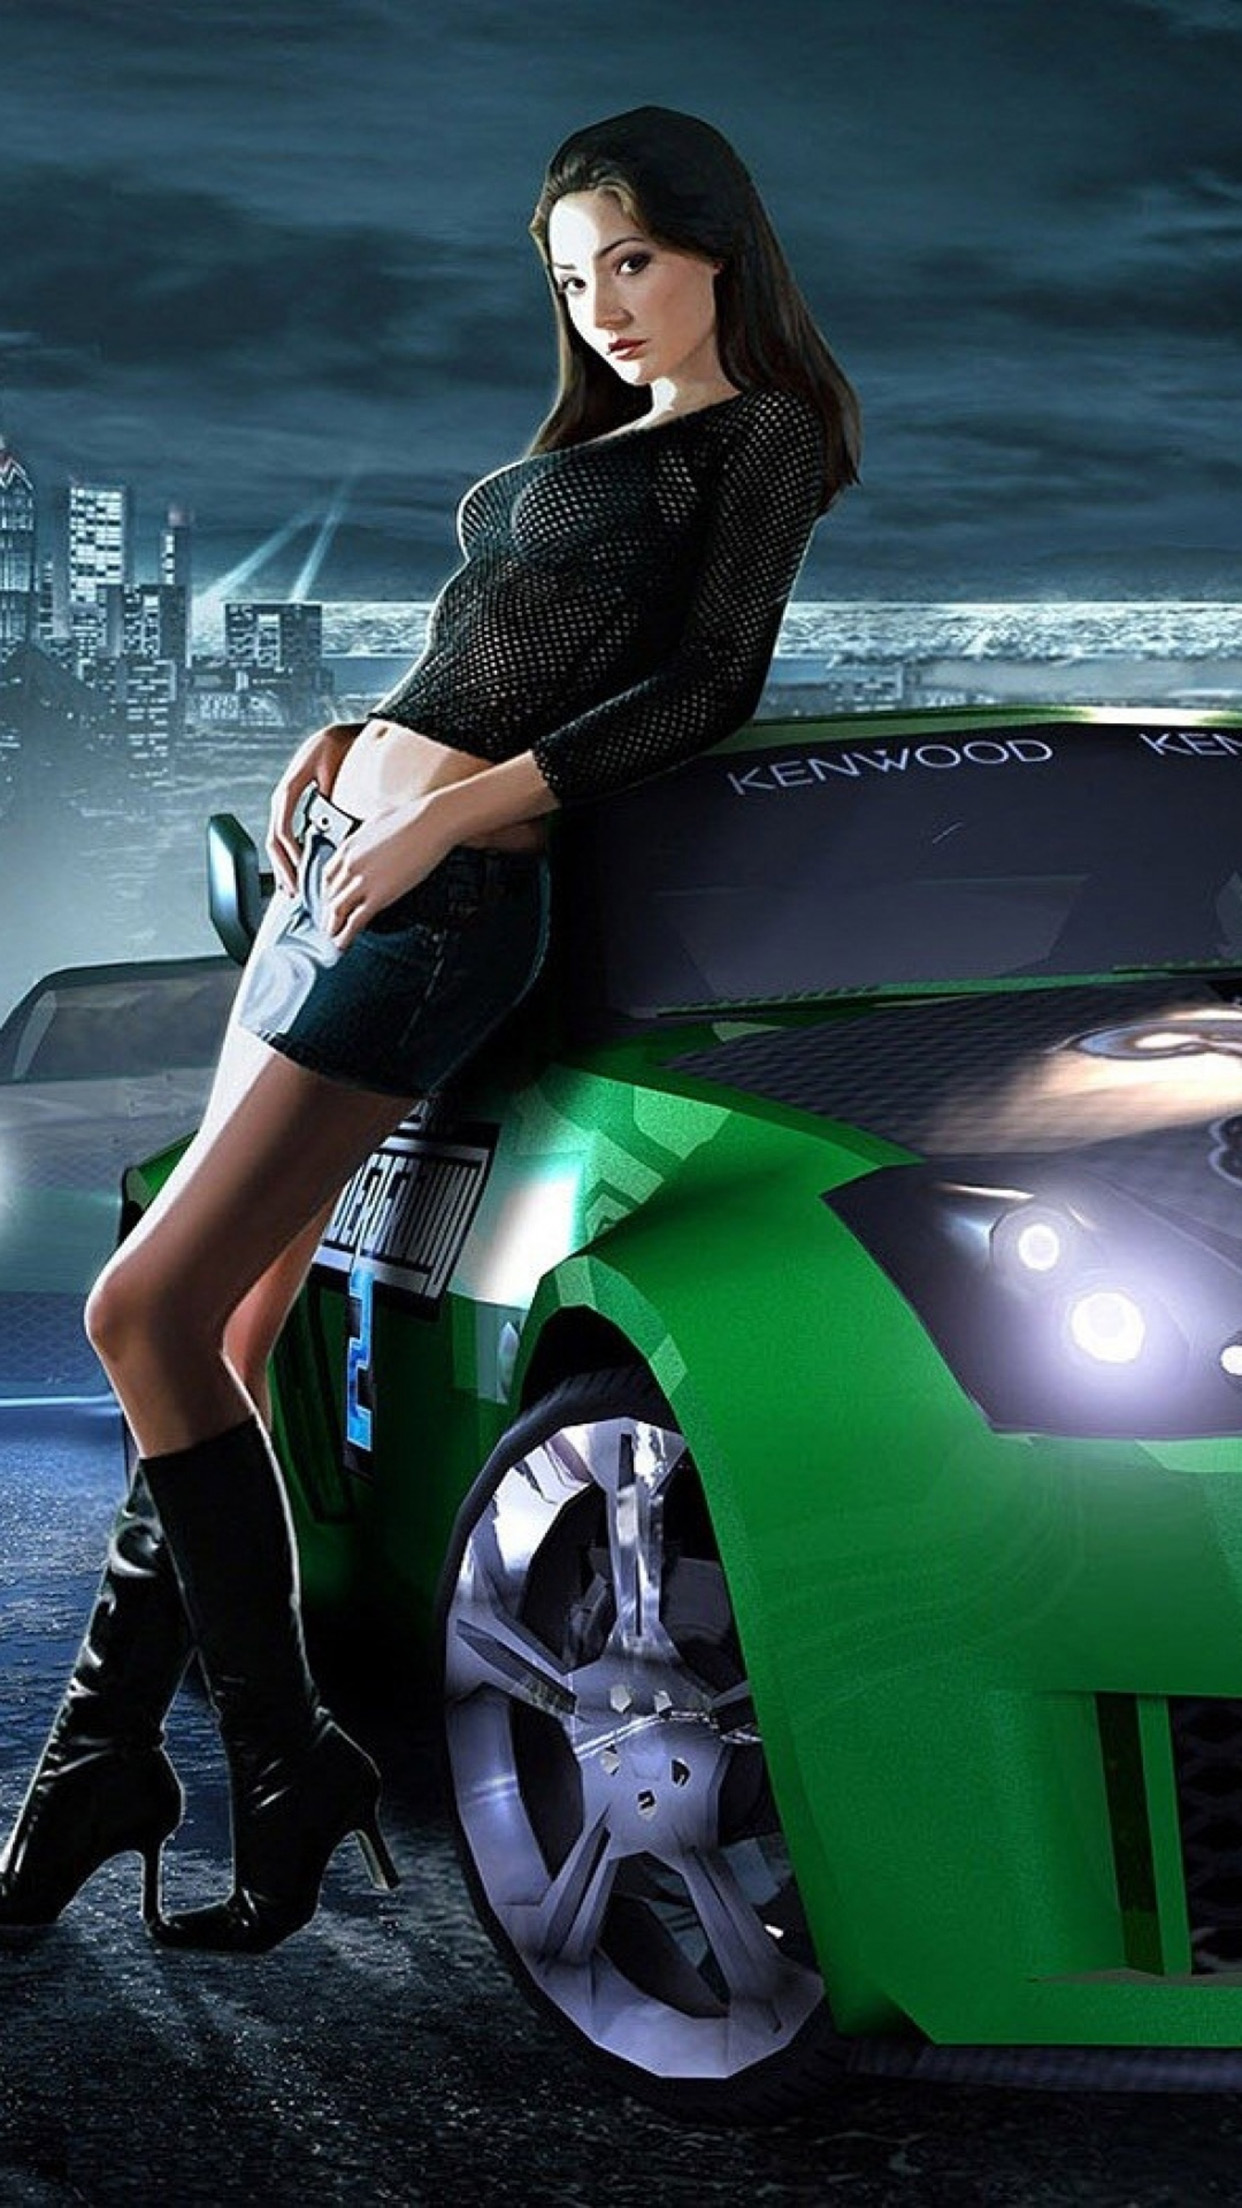 Need for speed Girl 3Wallpapers iPhone Parallax Need for speed girl